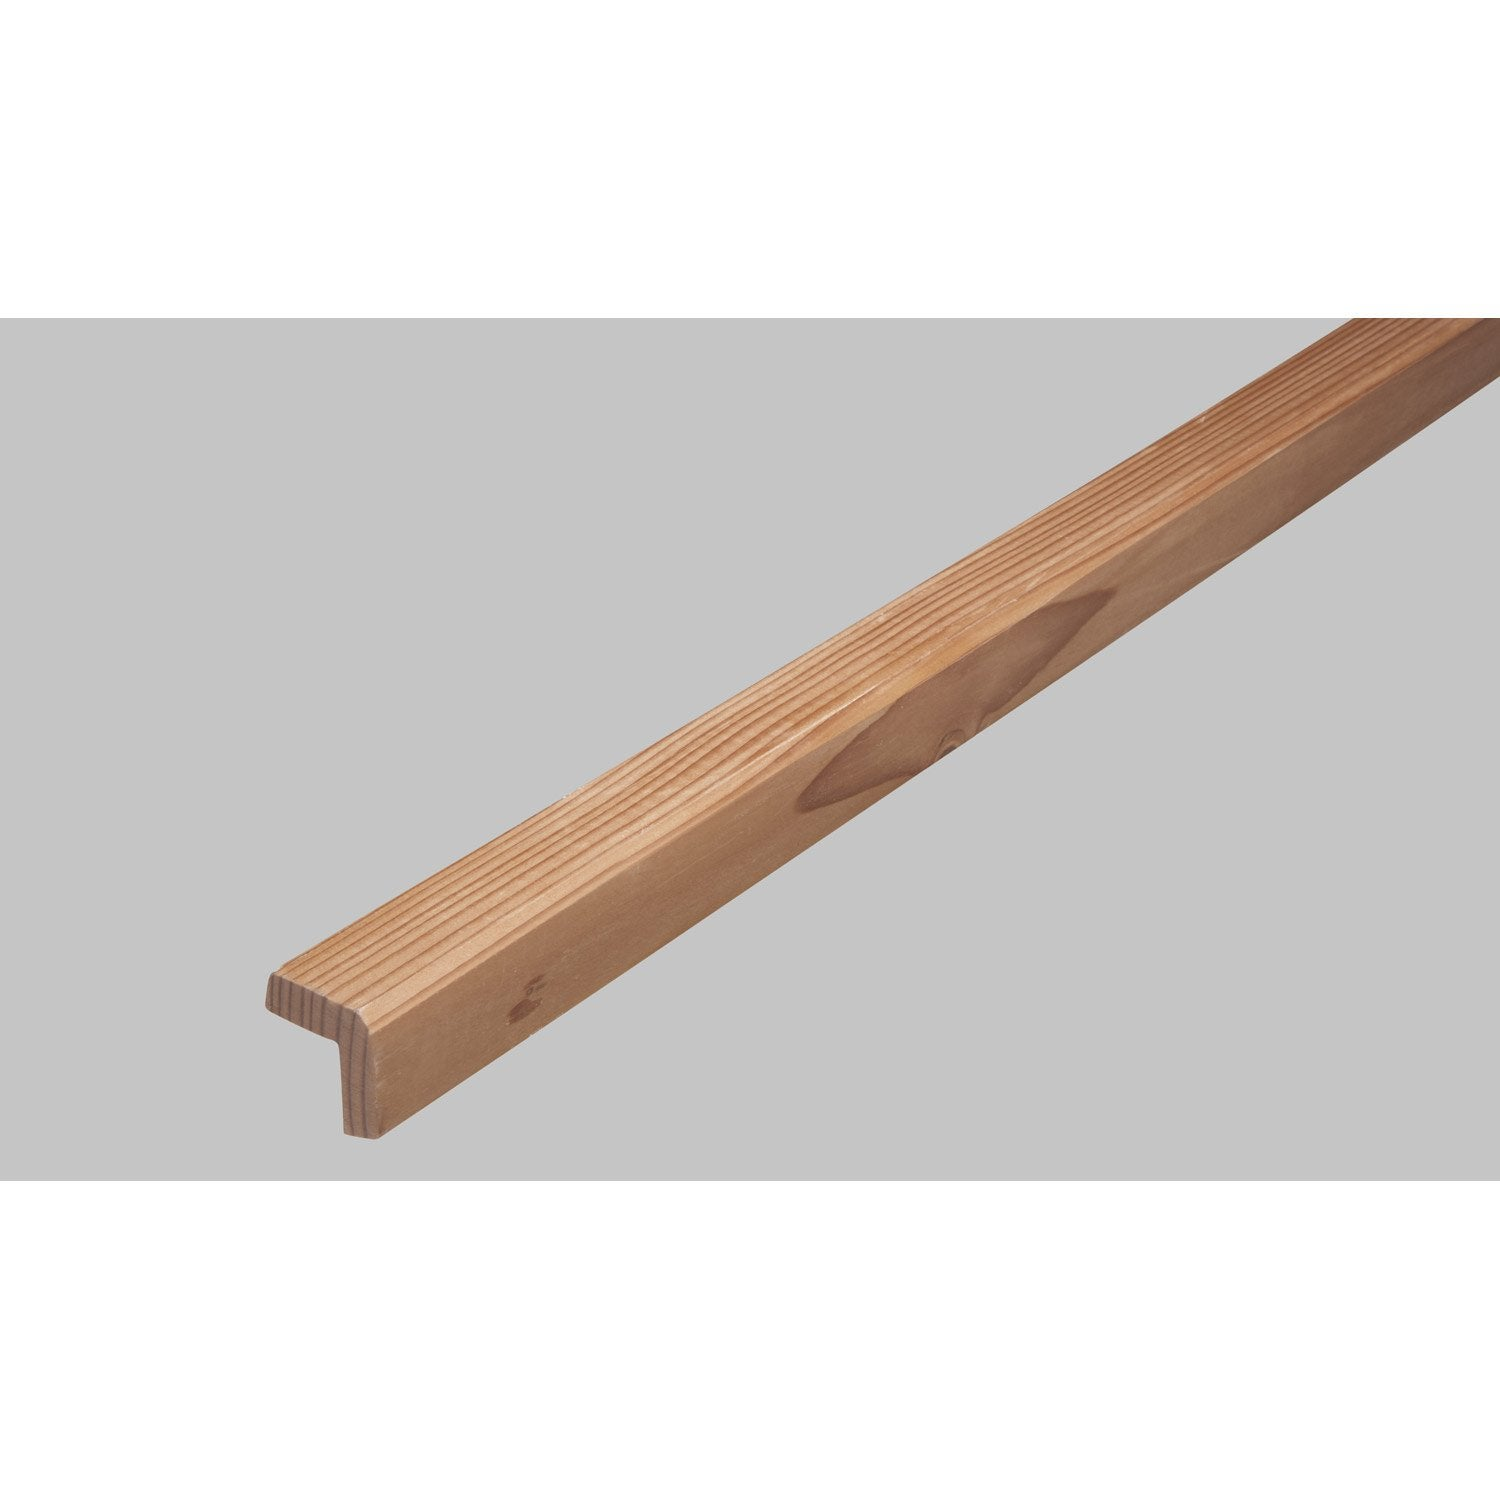 Baguette d 39 angle en douglas long 250cm section 46x46mm for Baguette d angle carrelage